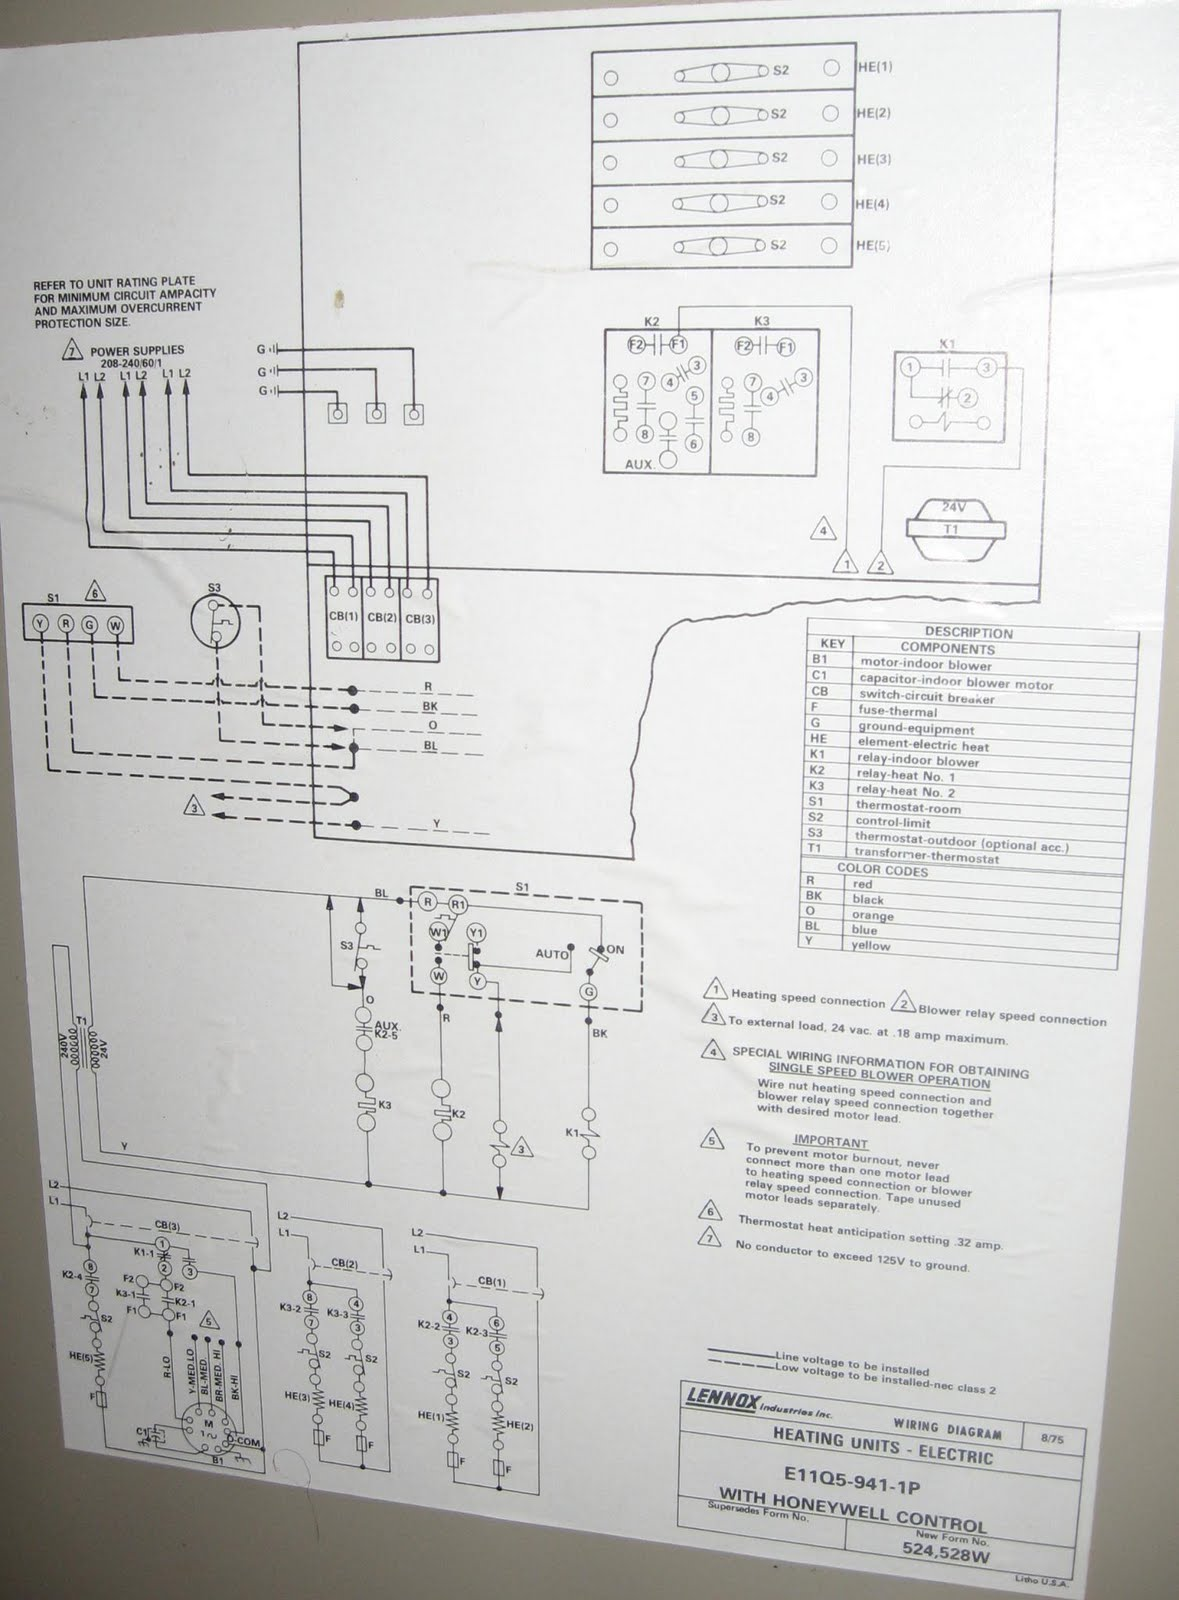 Lennox Oil Furnace Schematic Wiring Diagrams forbiddendoctororg – Lennox Fan Limit Switch Wiring Diagram